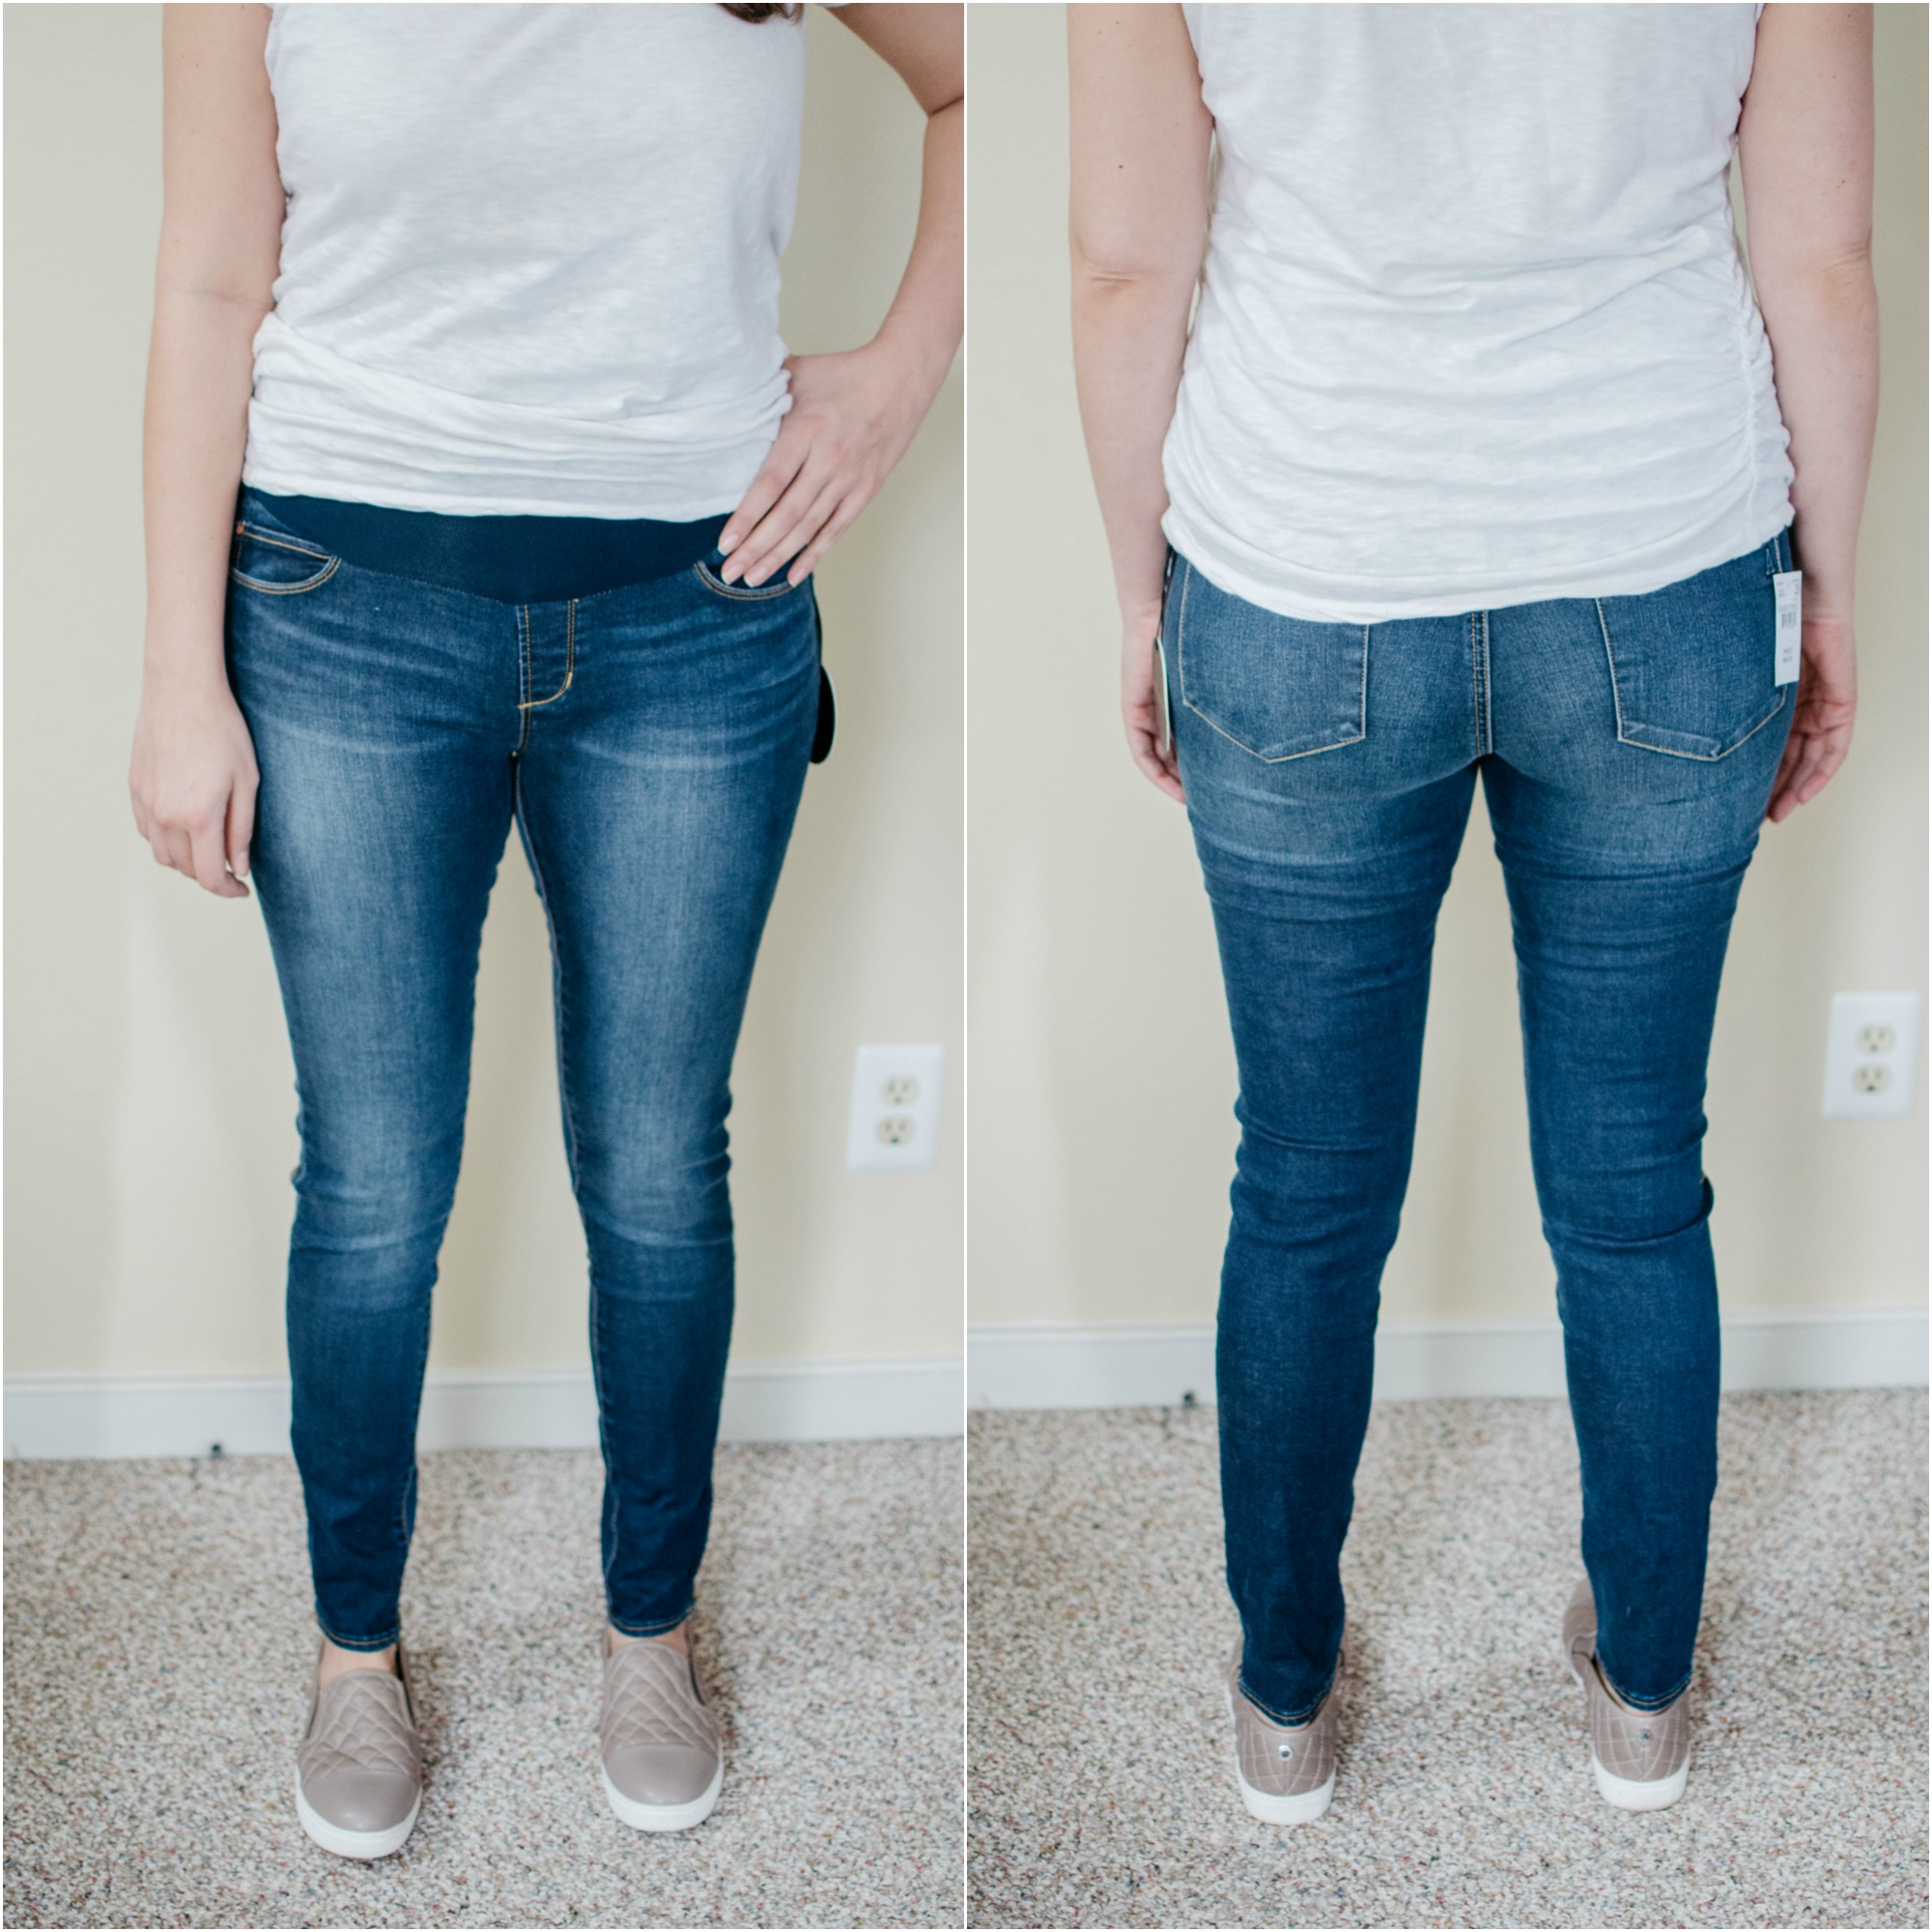 Articles of Society maternity jeans - best designer maternity jeans review | See reviews of over 15 maternity jeans brands by clicking through to this post! | bylaurenm.com